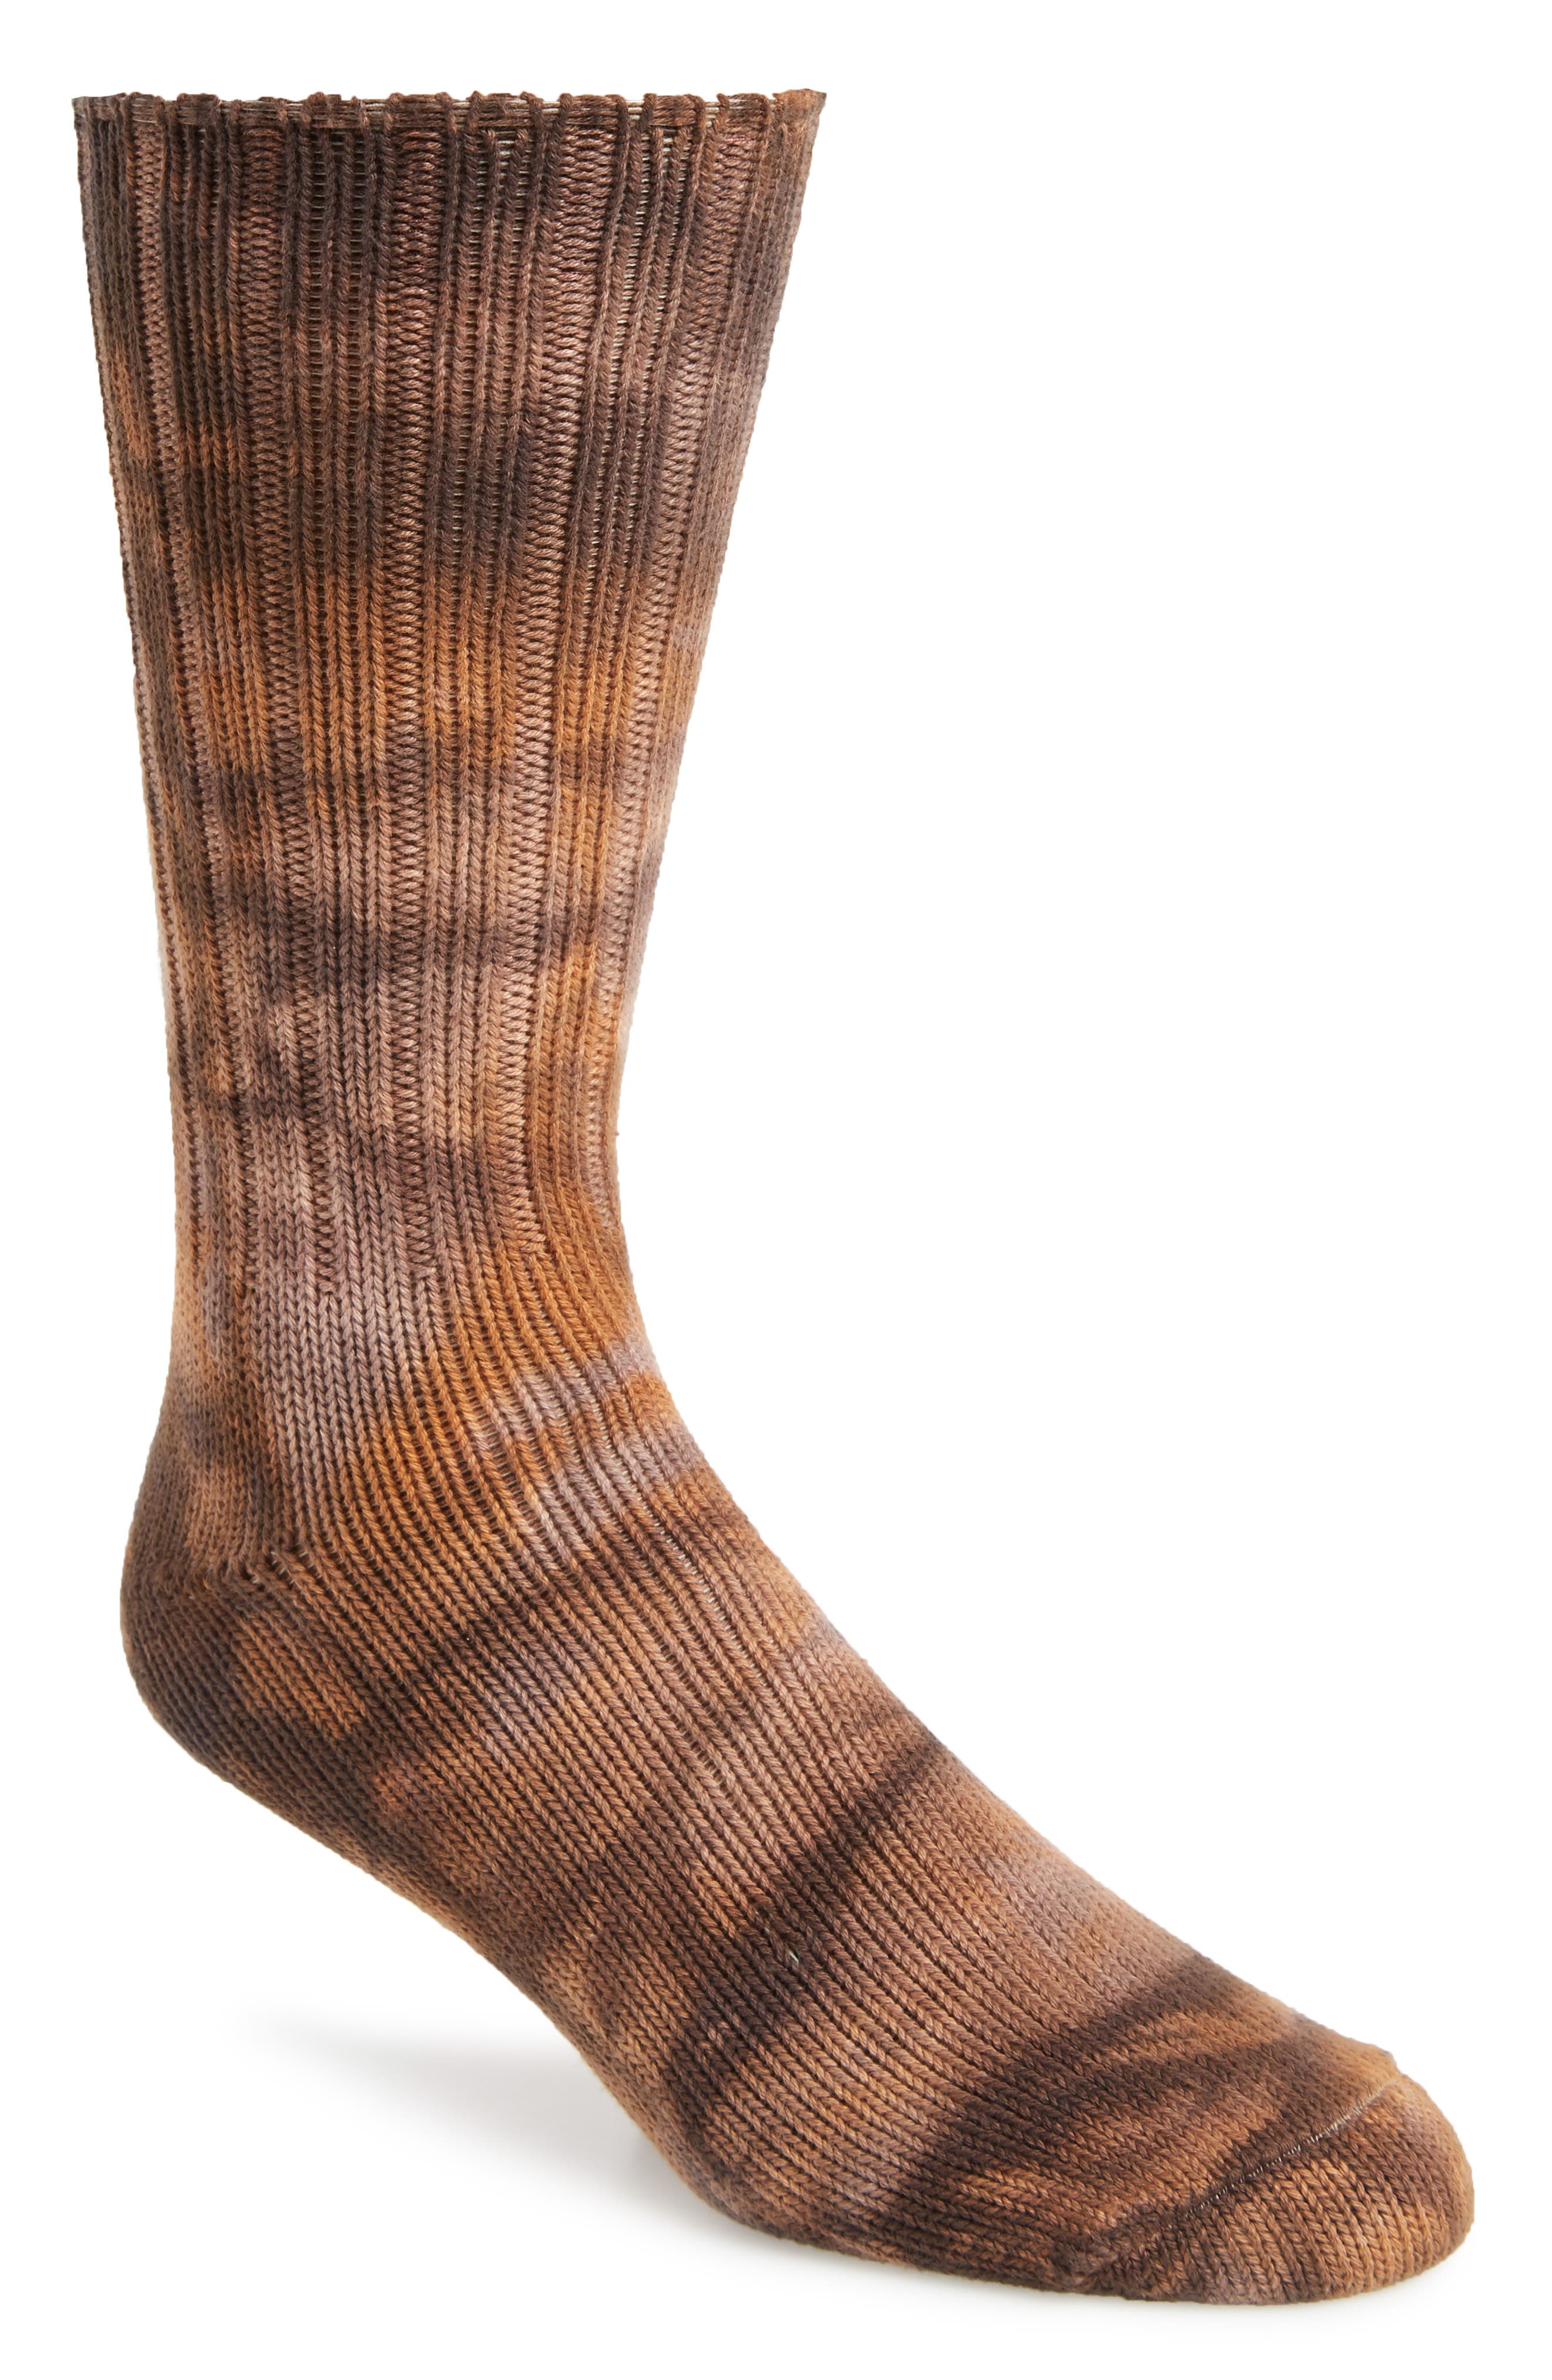 ANONYMOUS ISM Uneven Dye Socks, Main, color, BROWN